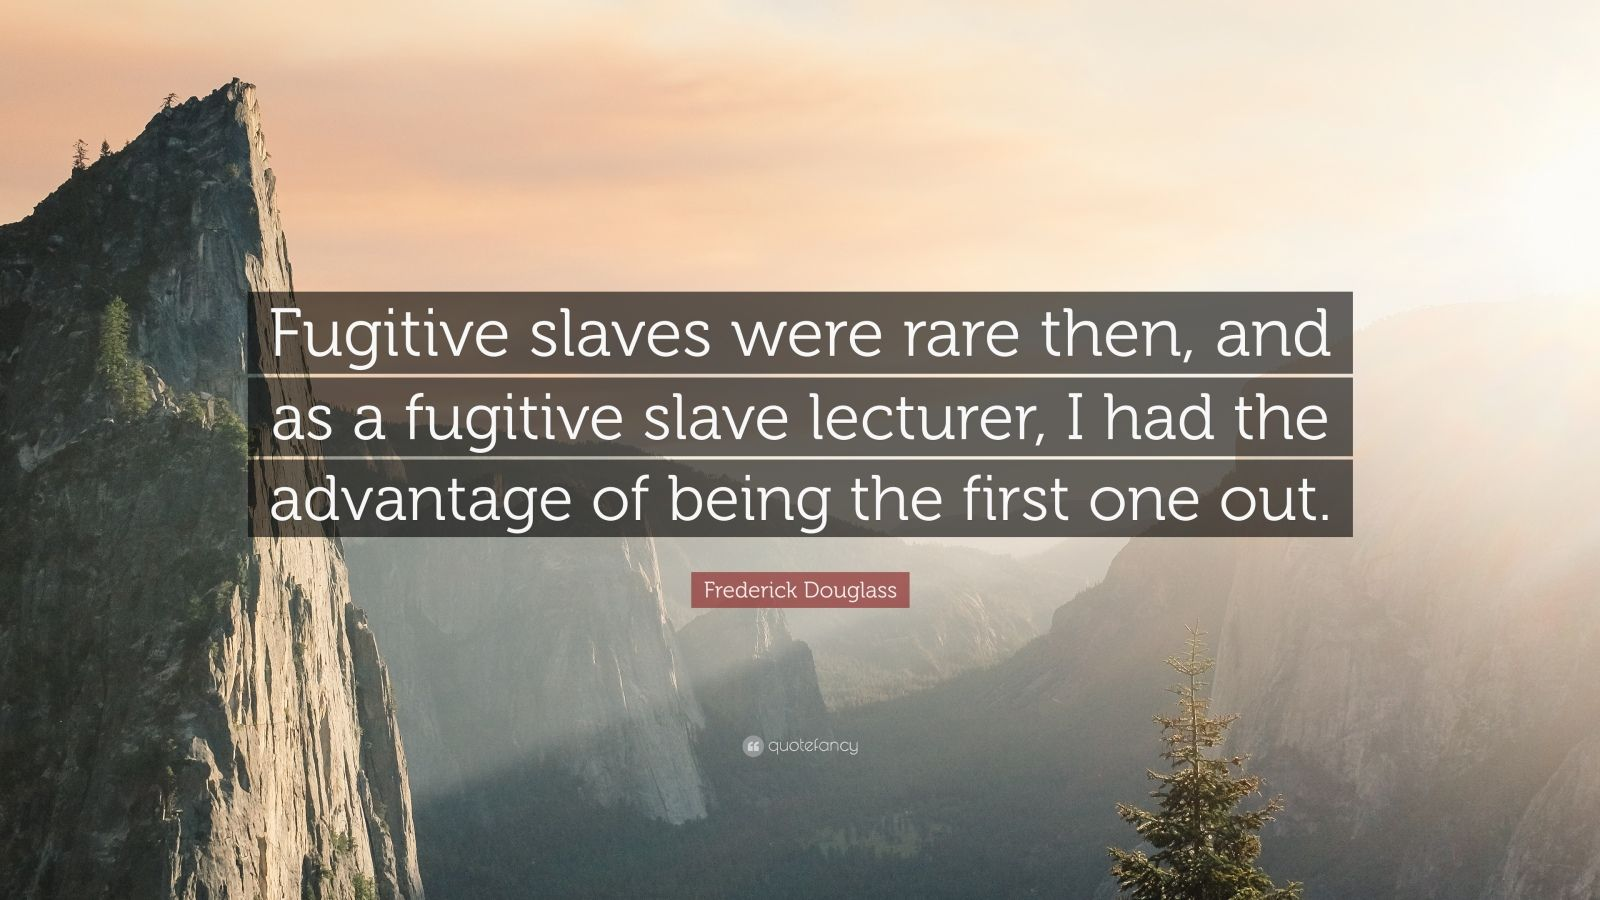 """Frederick Douglass Quote: """"Fugitive slaves were rare then, and as a fugitive slave lecturer, I had the advantage of being the first one out."""""""